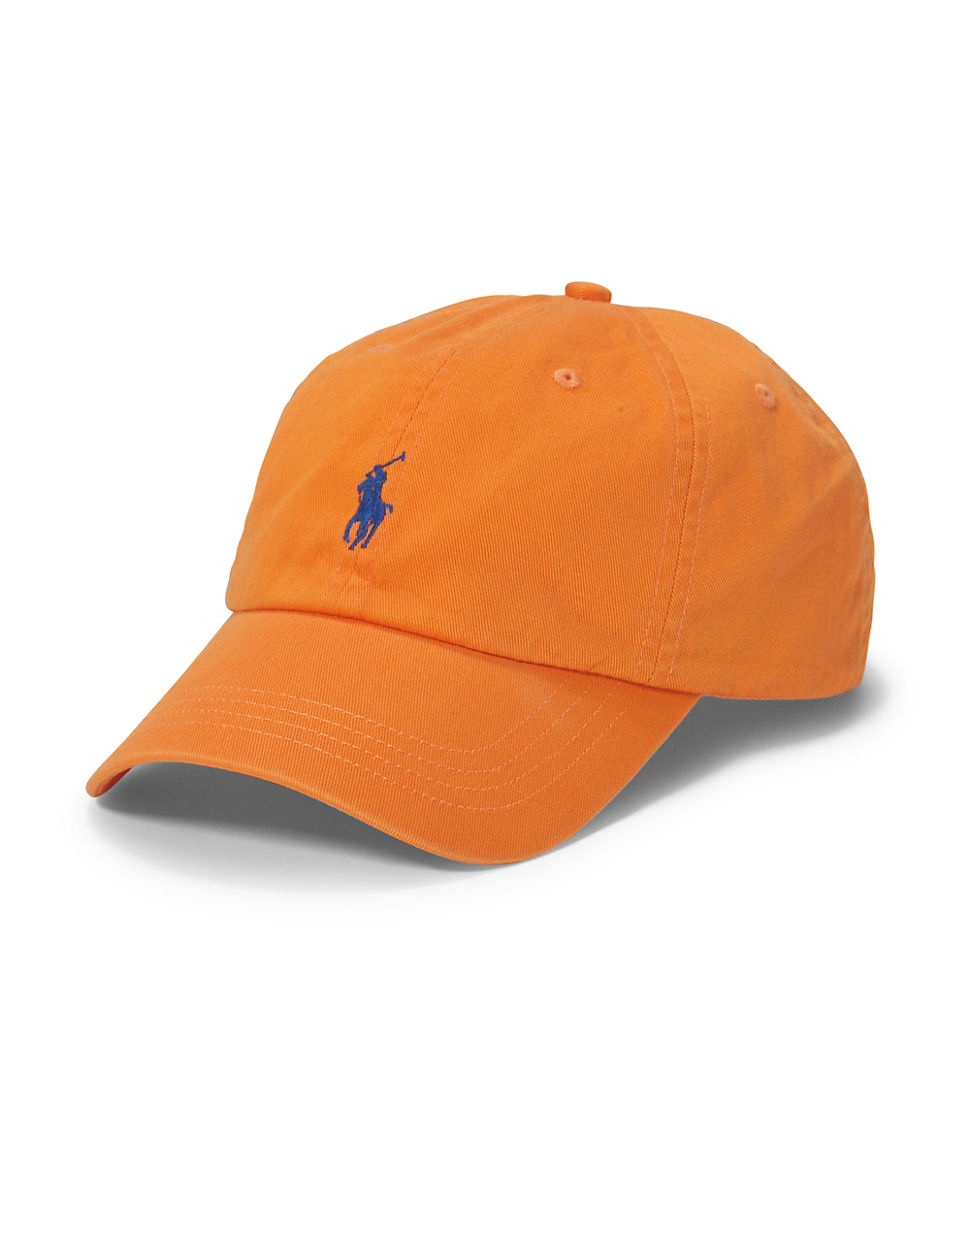 polo ralph lauren classic chino sports cap in orange for. Black Bedroom Furniture Sets. Home Design Ideas